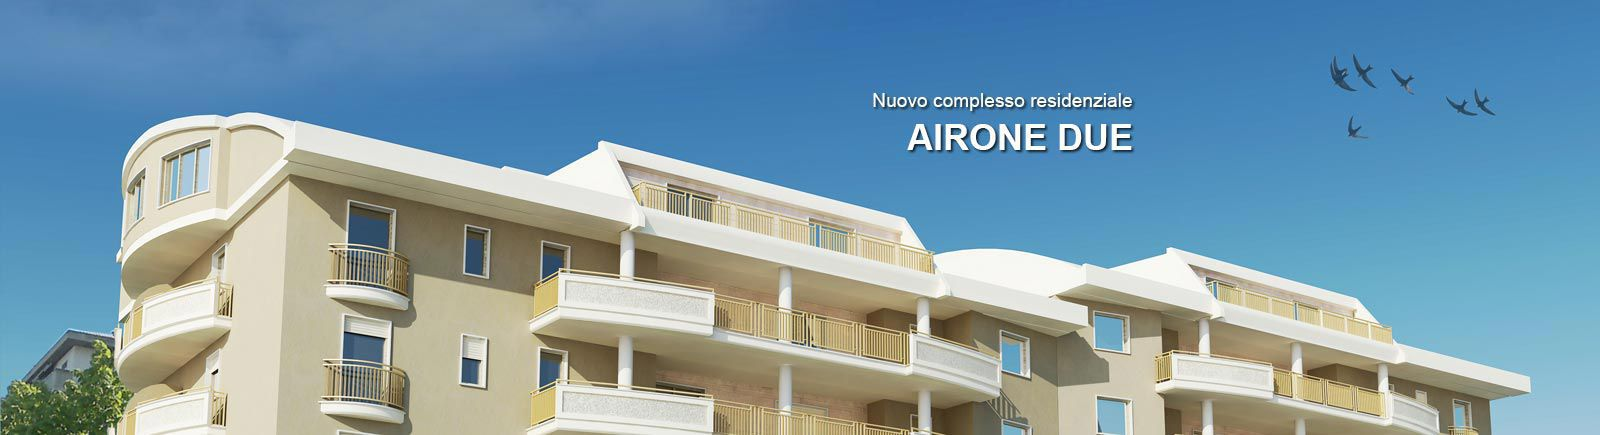 Nuovo complesso residenziale AIRONE DUE c